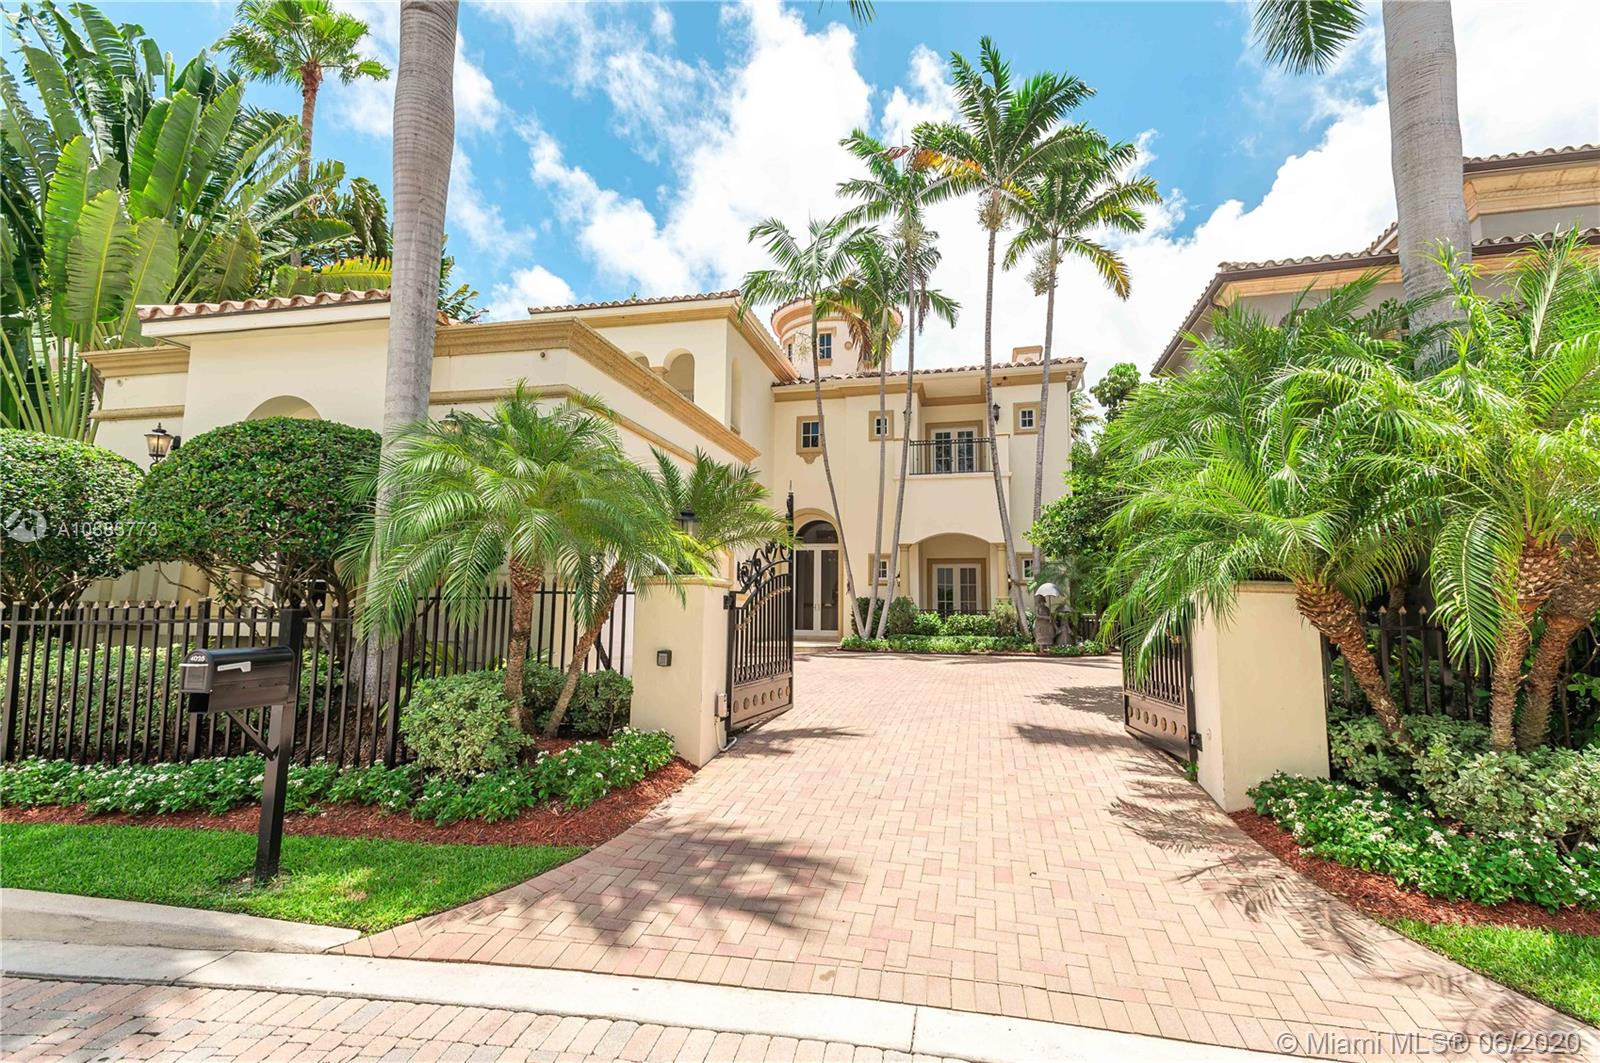 Island Estates-Modern Mansion has 6 Bds, 6.5 Bths 6200+ SQFT,PLUS a 3 car garage, soaring ceilings & vast balconies bringing the home to 7200 SQFT! INCLUDES A 50' ASSIGNED yacht slip!Great for entertaining w/ the formal bar/wine area, vaulted ceilings, wood floors throughout,coiffured ceilings,custom built-ins & open floor plan. Two first floor guest rms w/ full bathrms, LG formal dining rm w/ a custom atrium & fountain, formal living rm, wood burning fire place, separate den, chef's gourmet eat-in kitchen, cabana bath & full laundry facilities on both floors. The grand staircase or elevator will take you to the 2nd fl w/ 2 XL guest bedrms & bathrooms & the vast mstr bedrm & bathrm, custom walk-in closets,HUGE balcony & calming water views. Come experience the home!